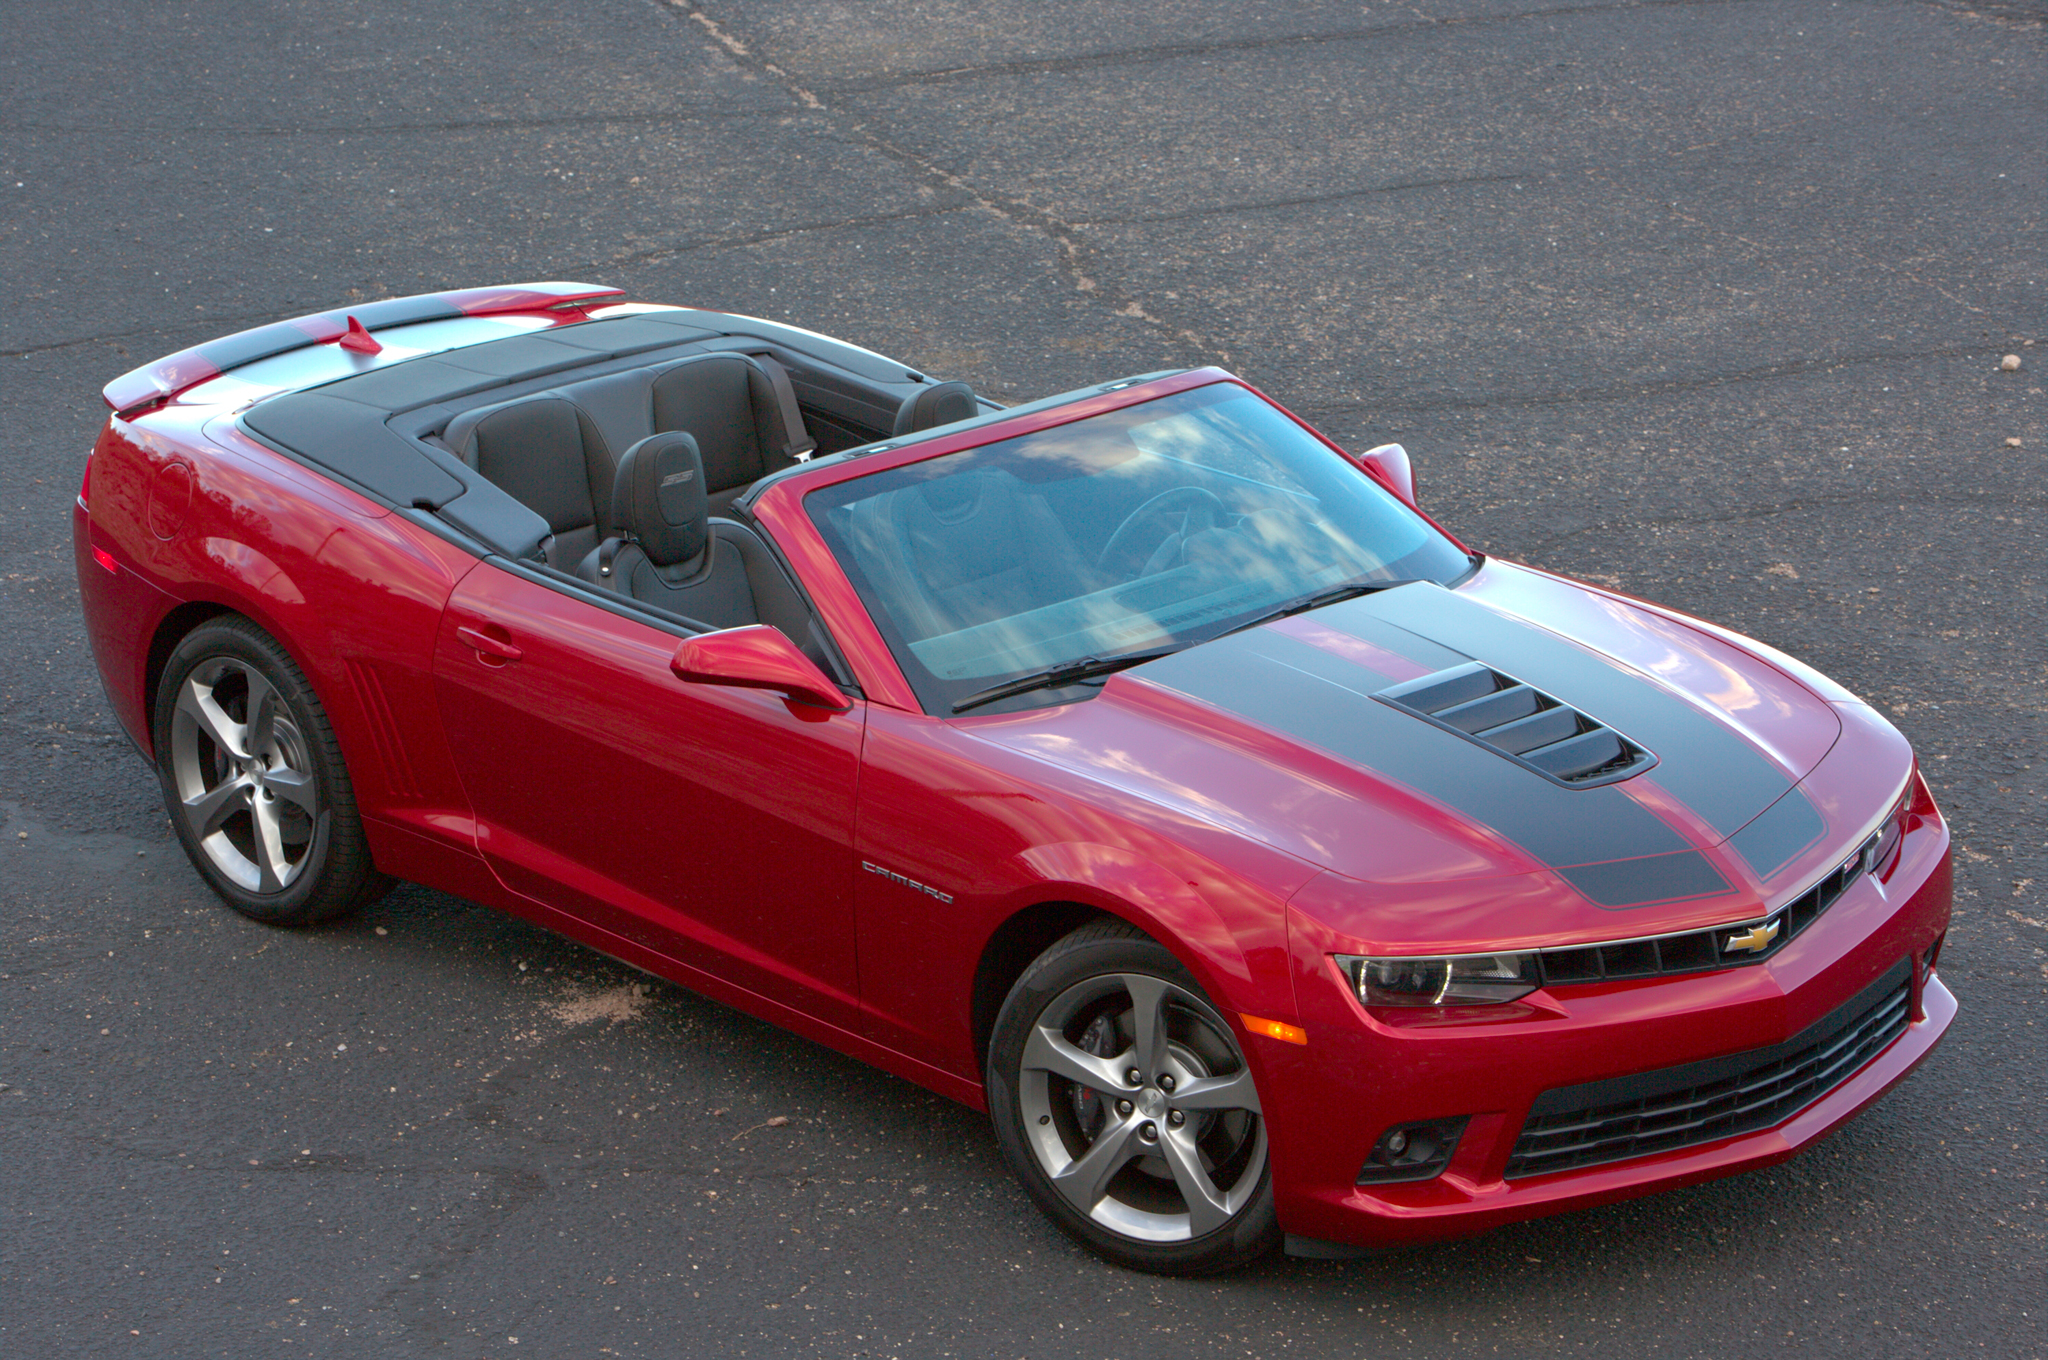 chevrolet camaro convertible 2016 images #7